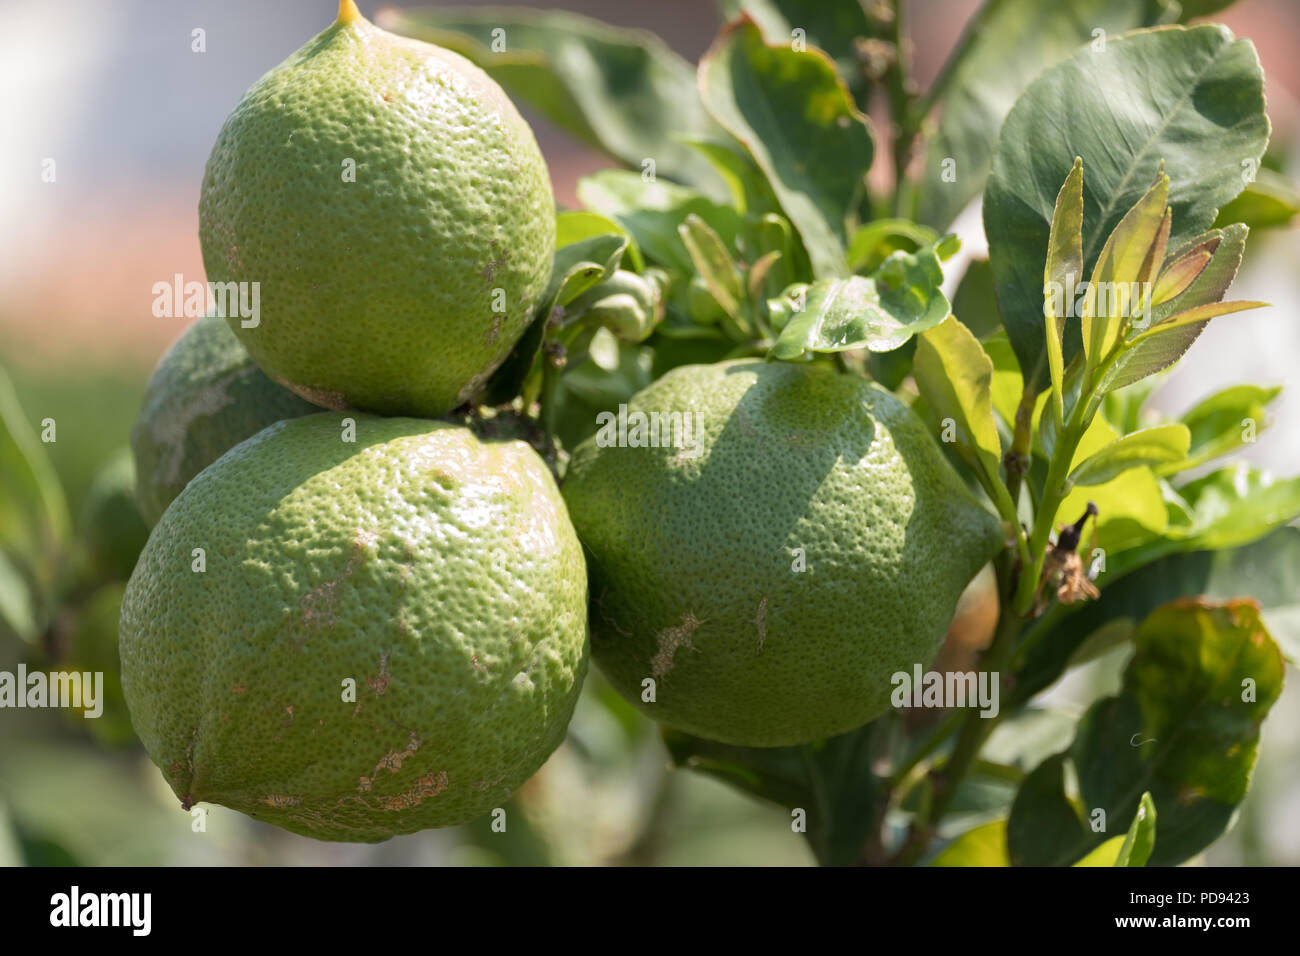 Green lemons on tree in sunshine, Citrus limon (L.) Osbeck, from the flowering plant family Rutaceae, now sold in Tesco, Saronida, Greece. Stock Photo